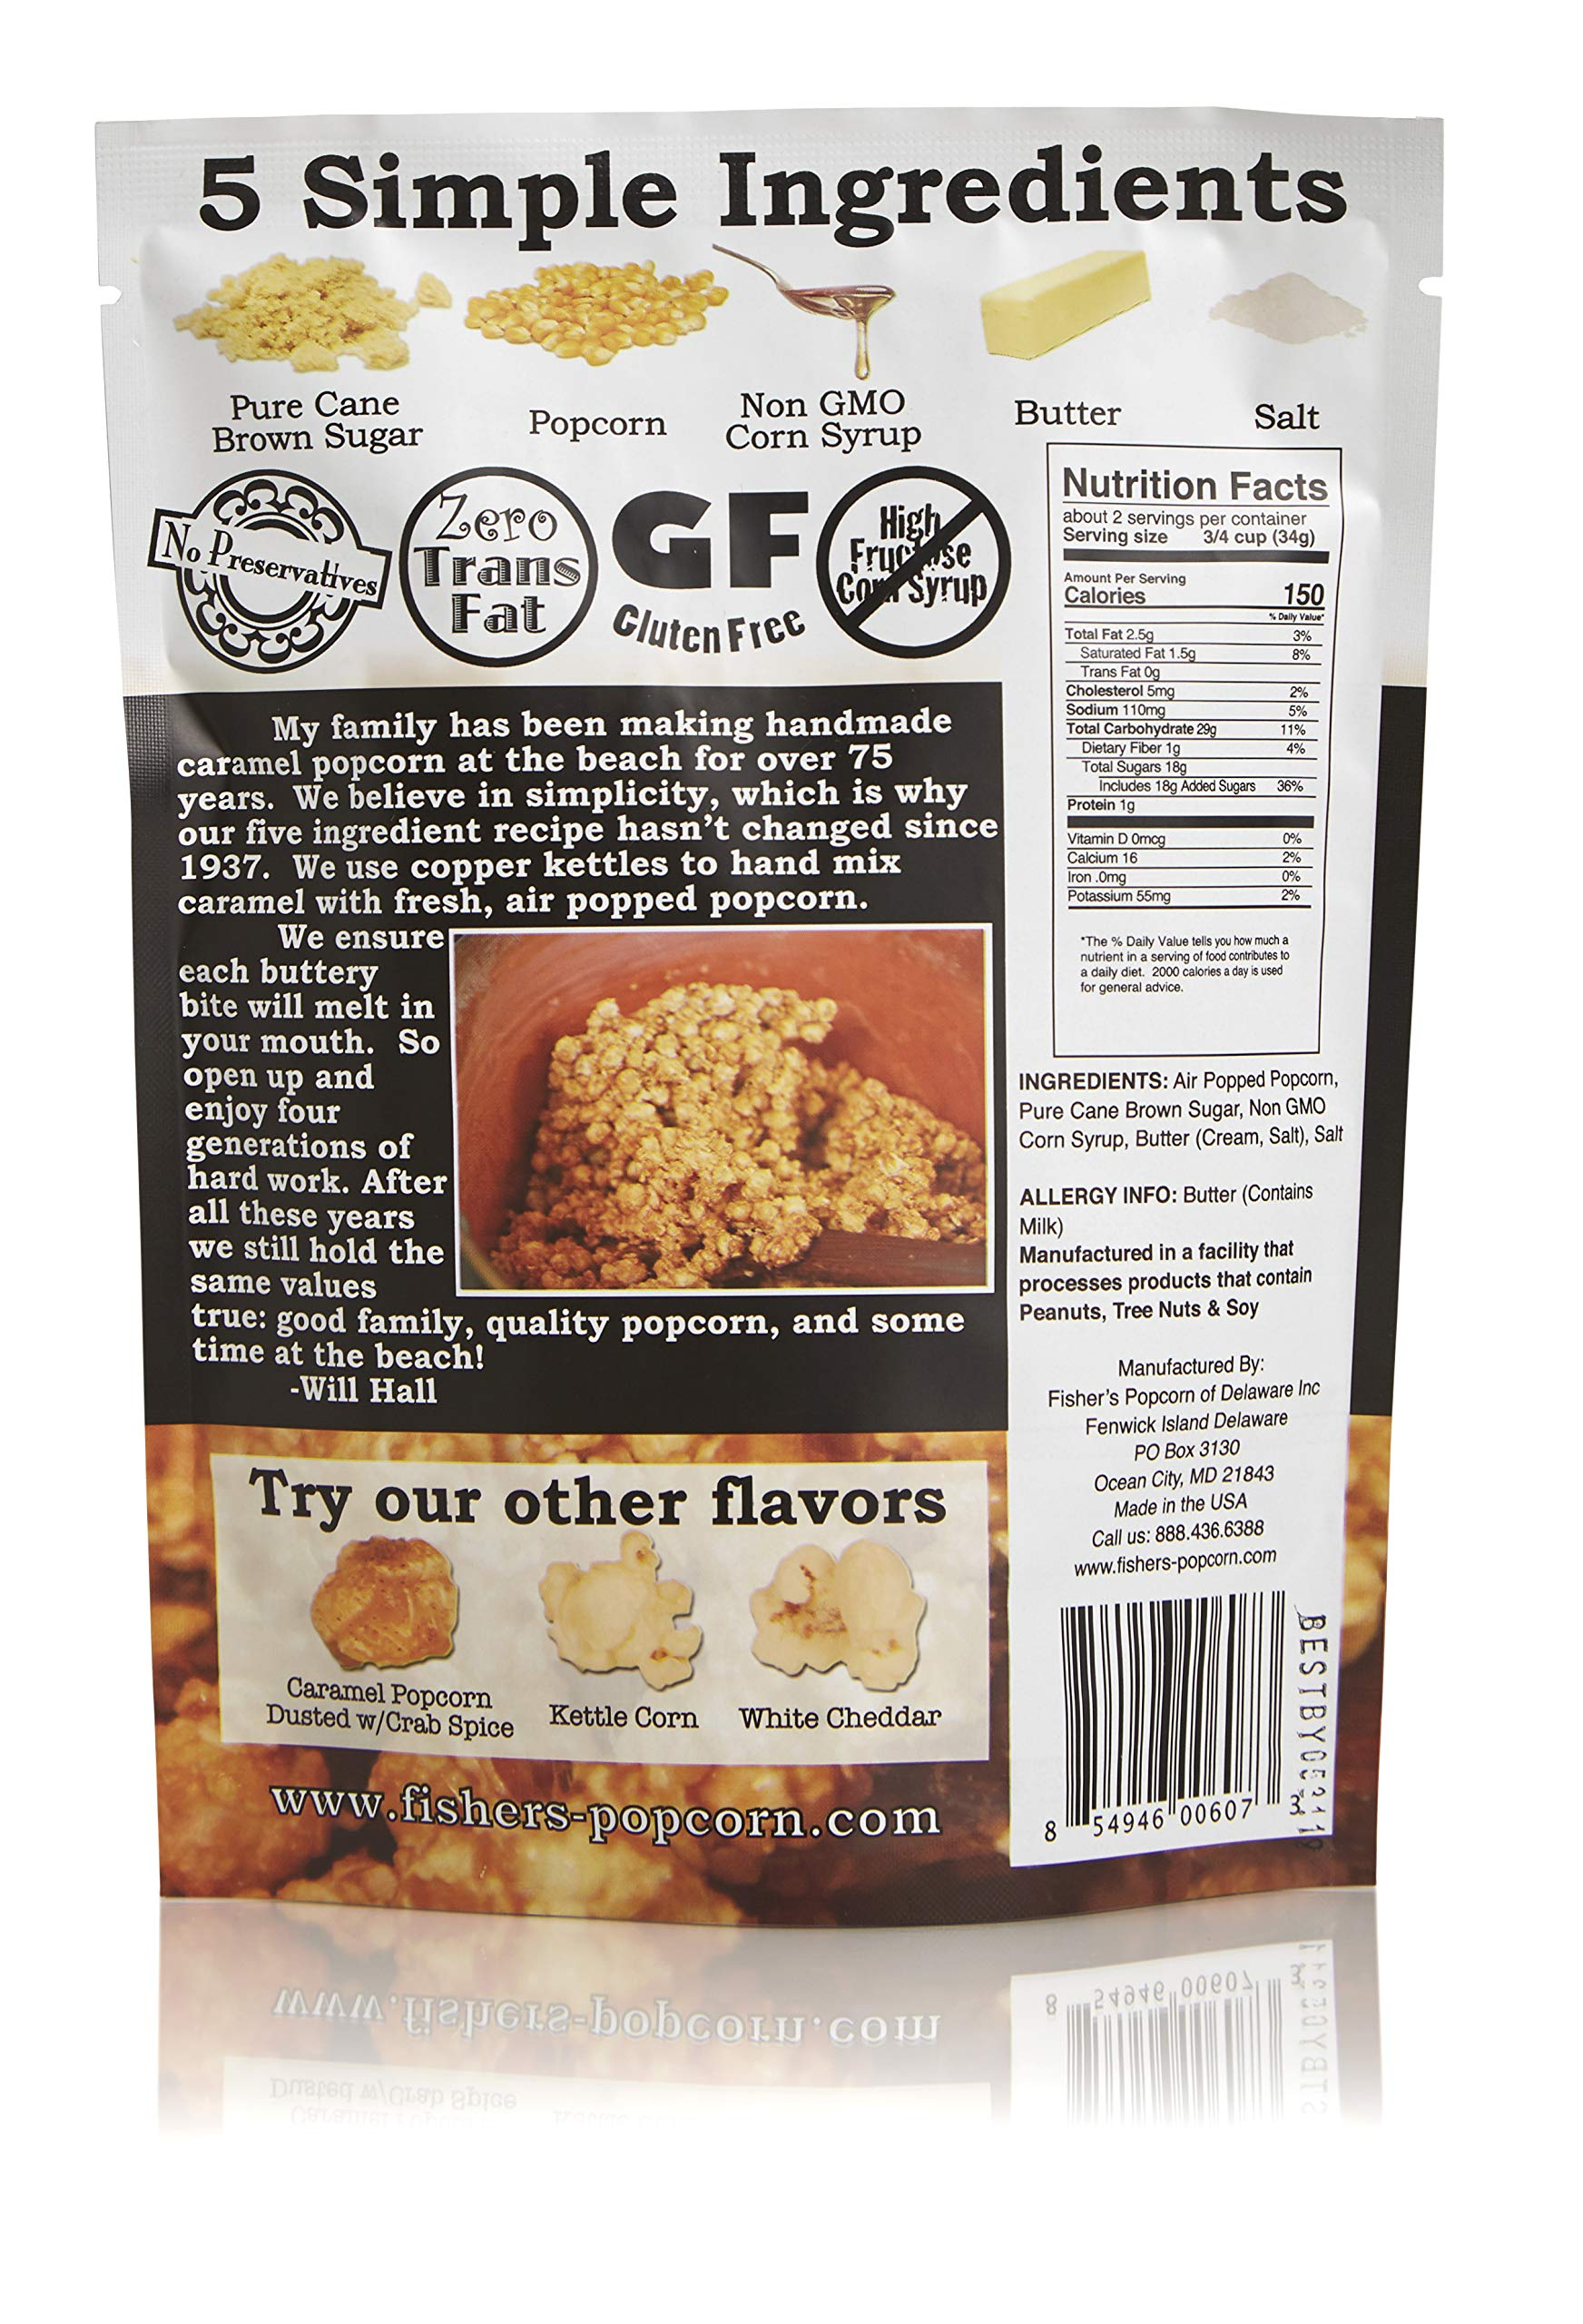 Fisher's Popcorn Caramel Popcorn, Gluten Free, 5 Simple Ingredients, Handmade, No Preservatives, No High Fructose Corn Syrup, Zero Trans Fat, 2oz Bags (Case of 50) by Fisher's Popcorn (Image #2)